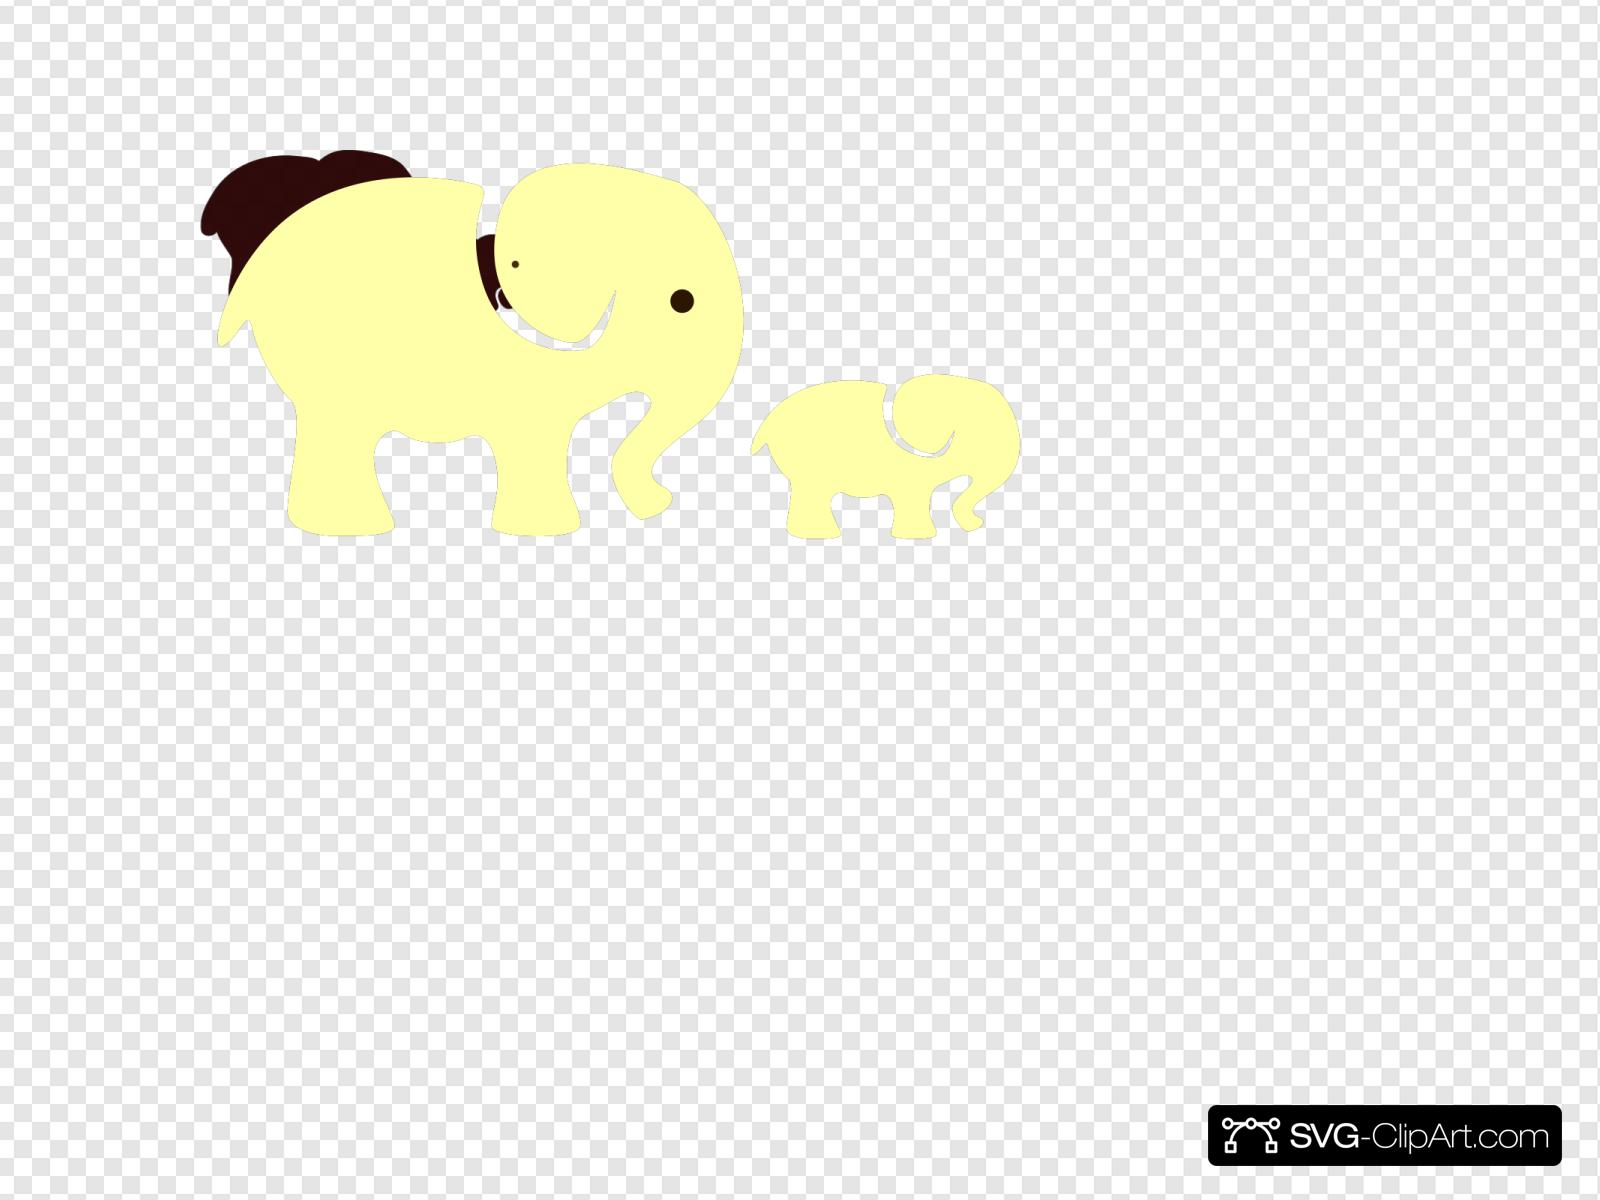 Yellow Elephant Mom Baby Svg Vector Yellow Elephant Mom Baby Clip Art Svg Clipart